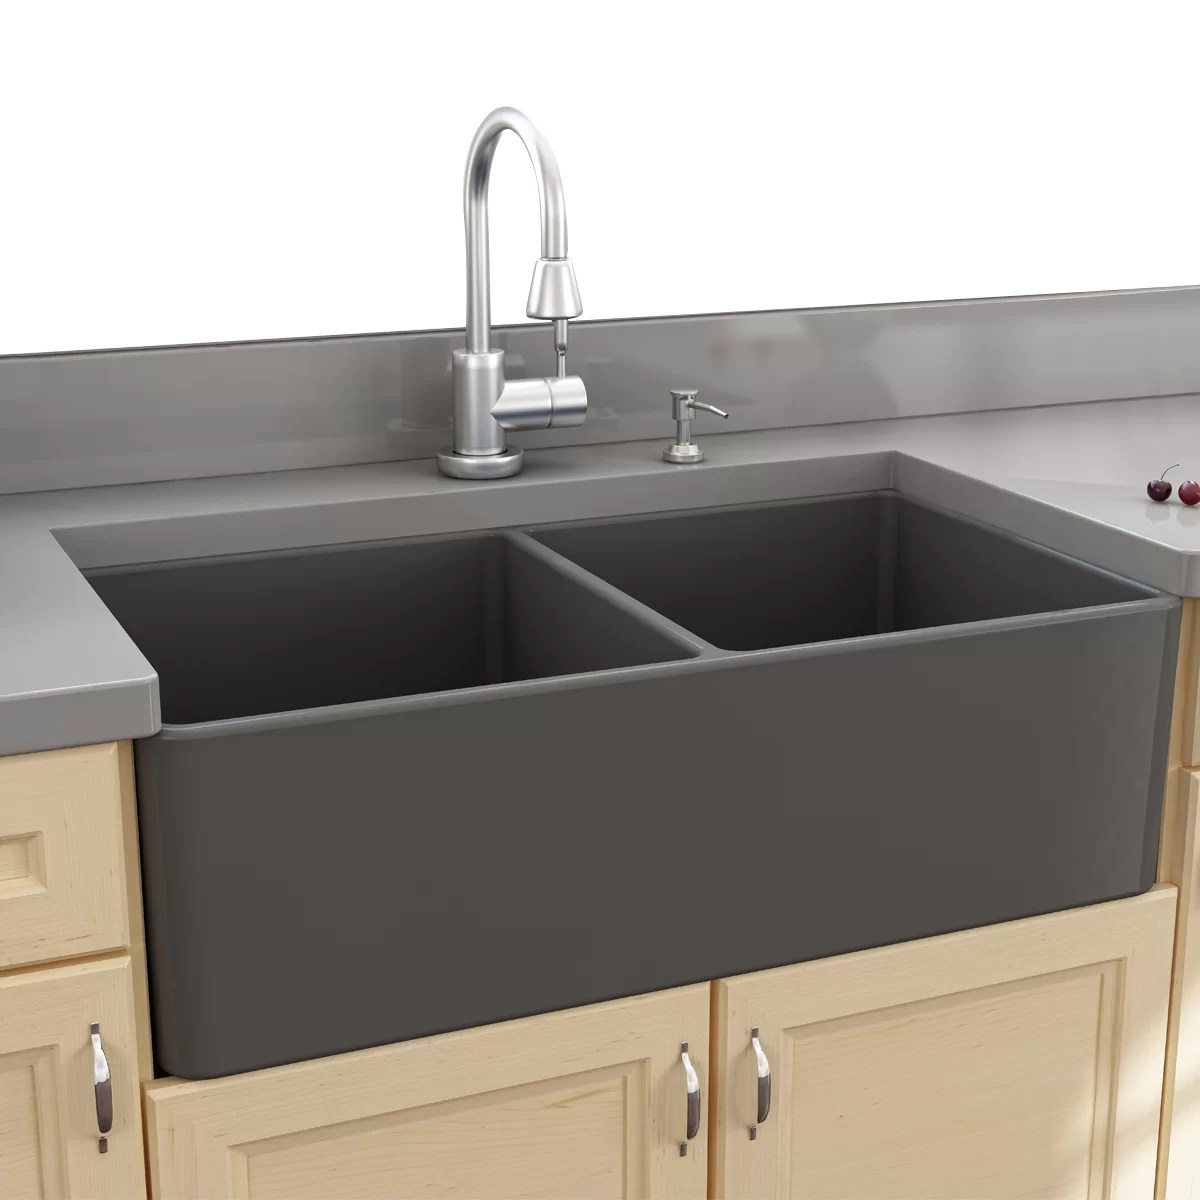 double kitchen sink rohl country faucet nantucket sinks cape 33 25 quot x 18 bowl apron